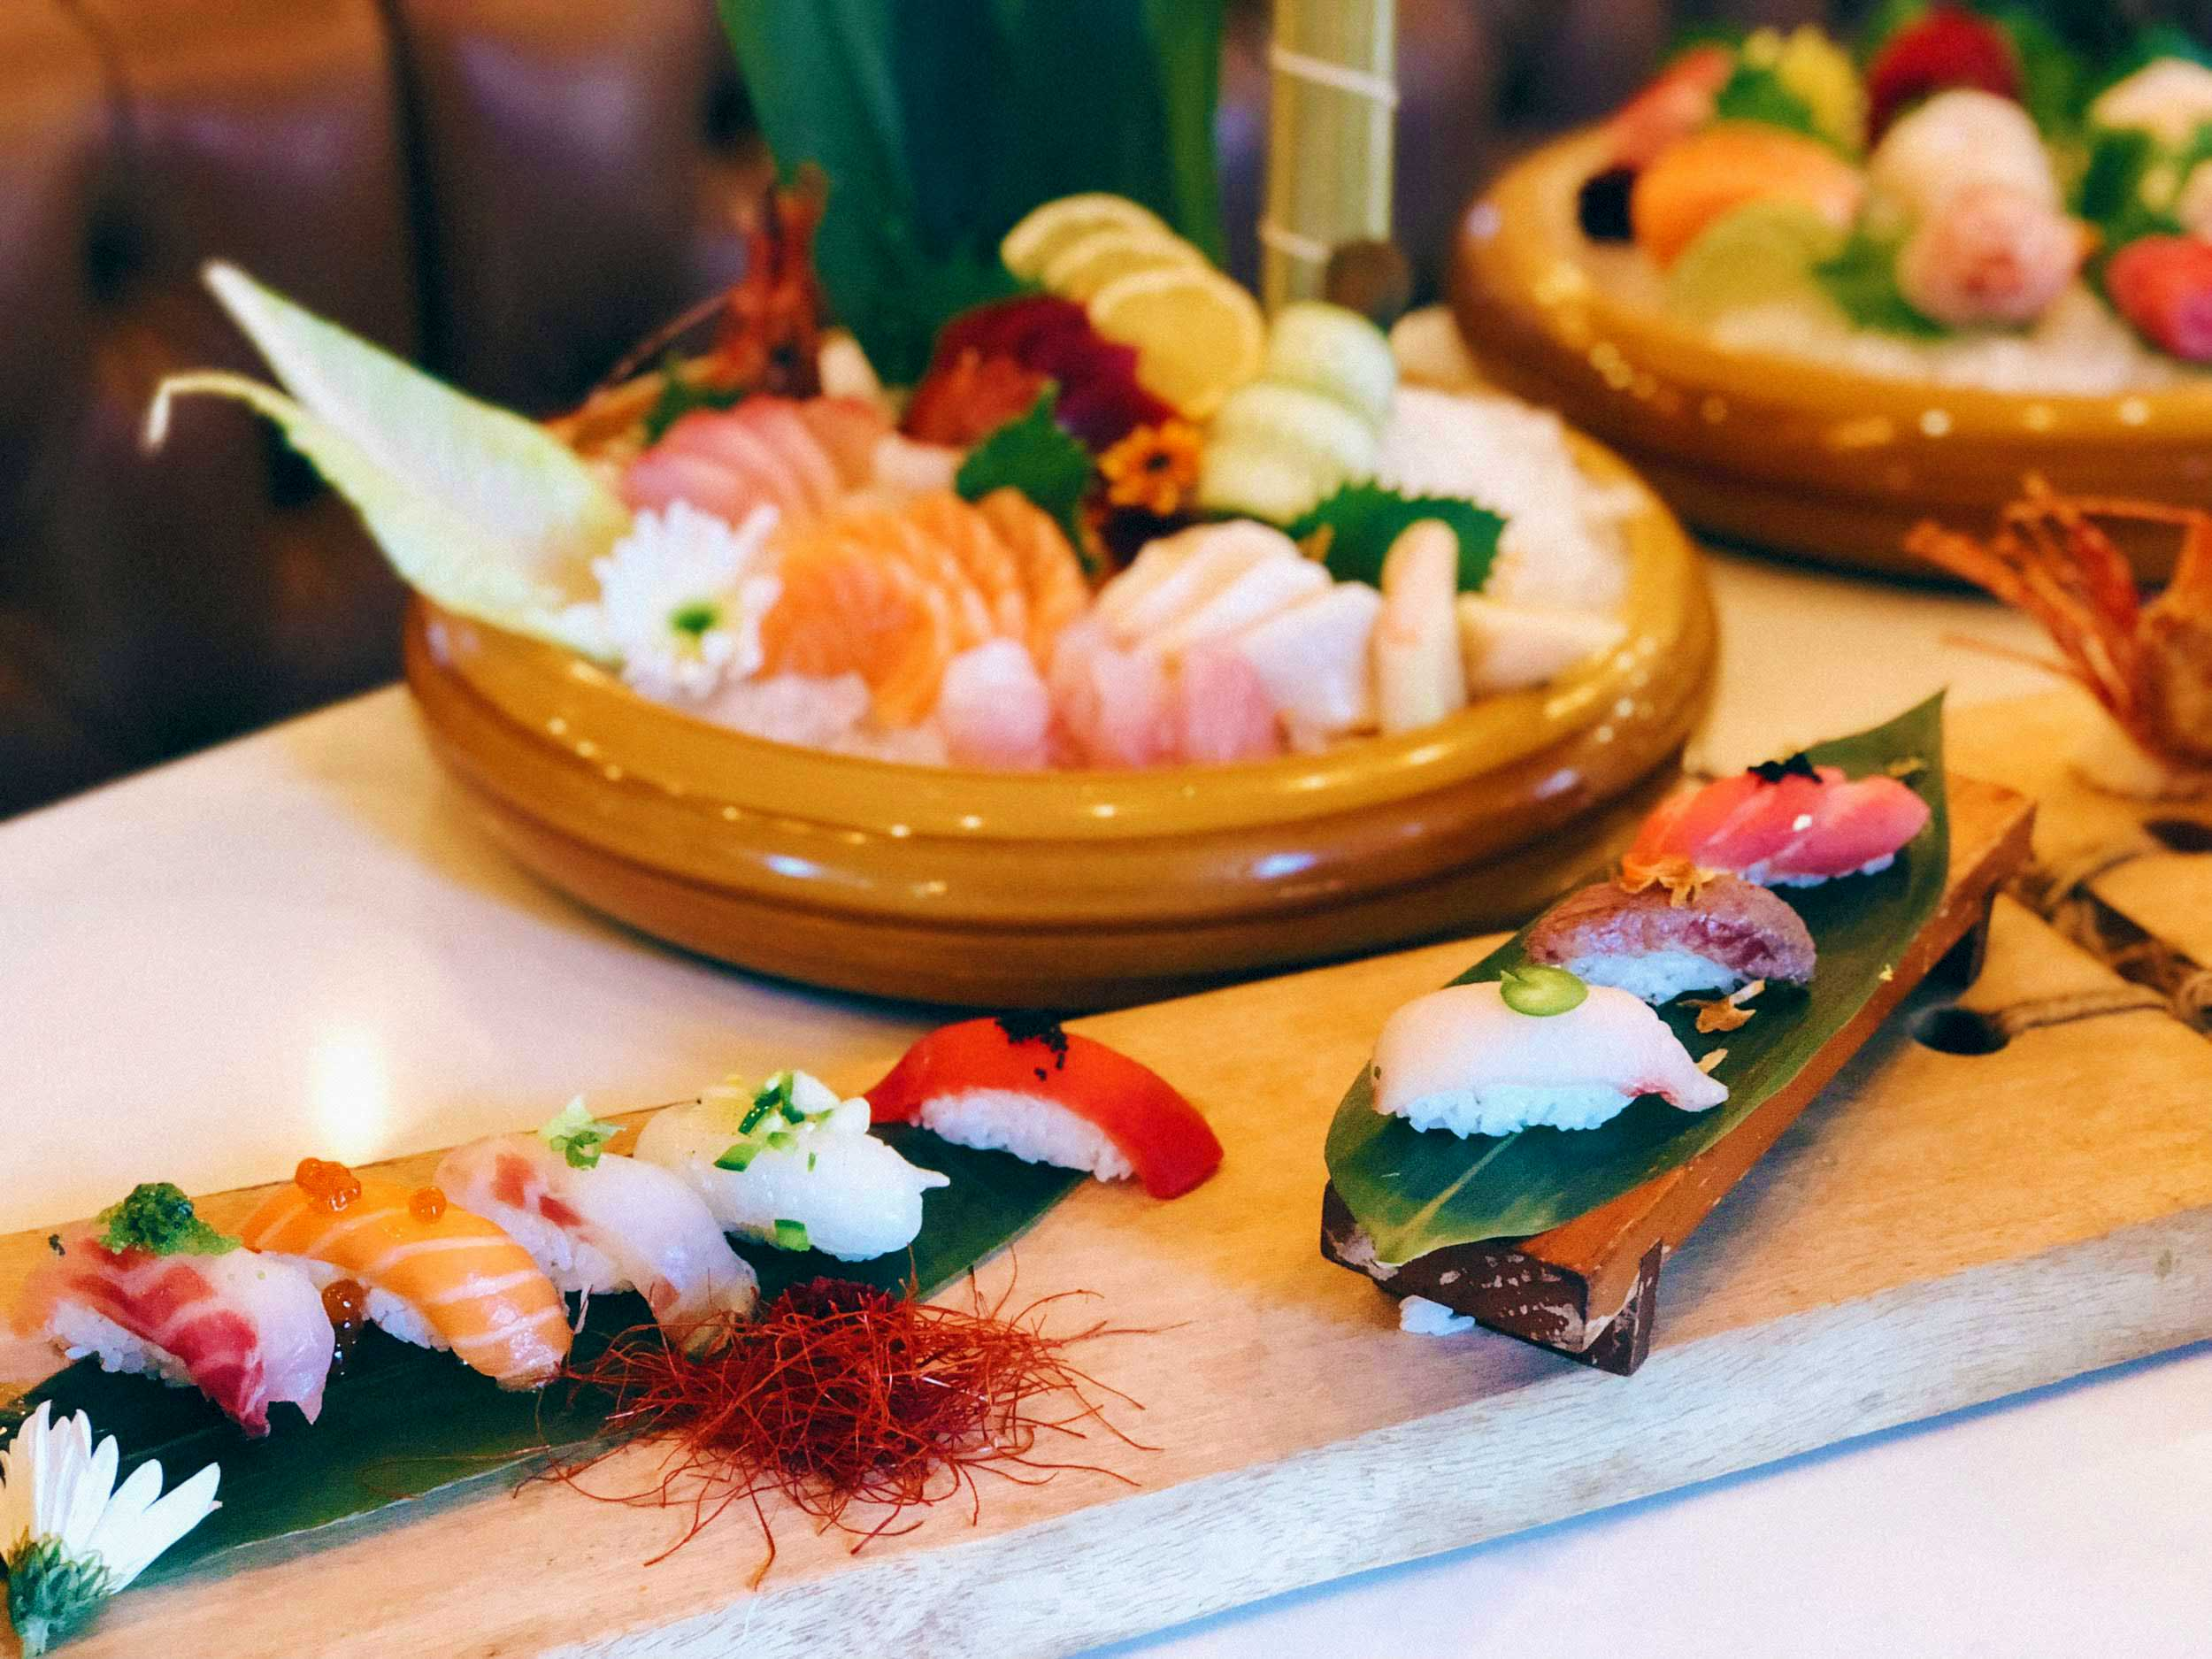 Freshly created sushi & sashimi dishes